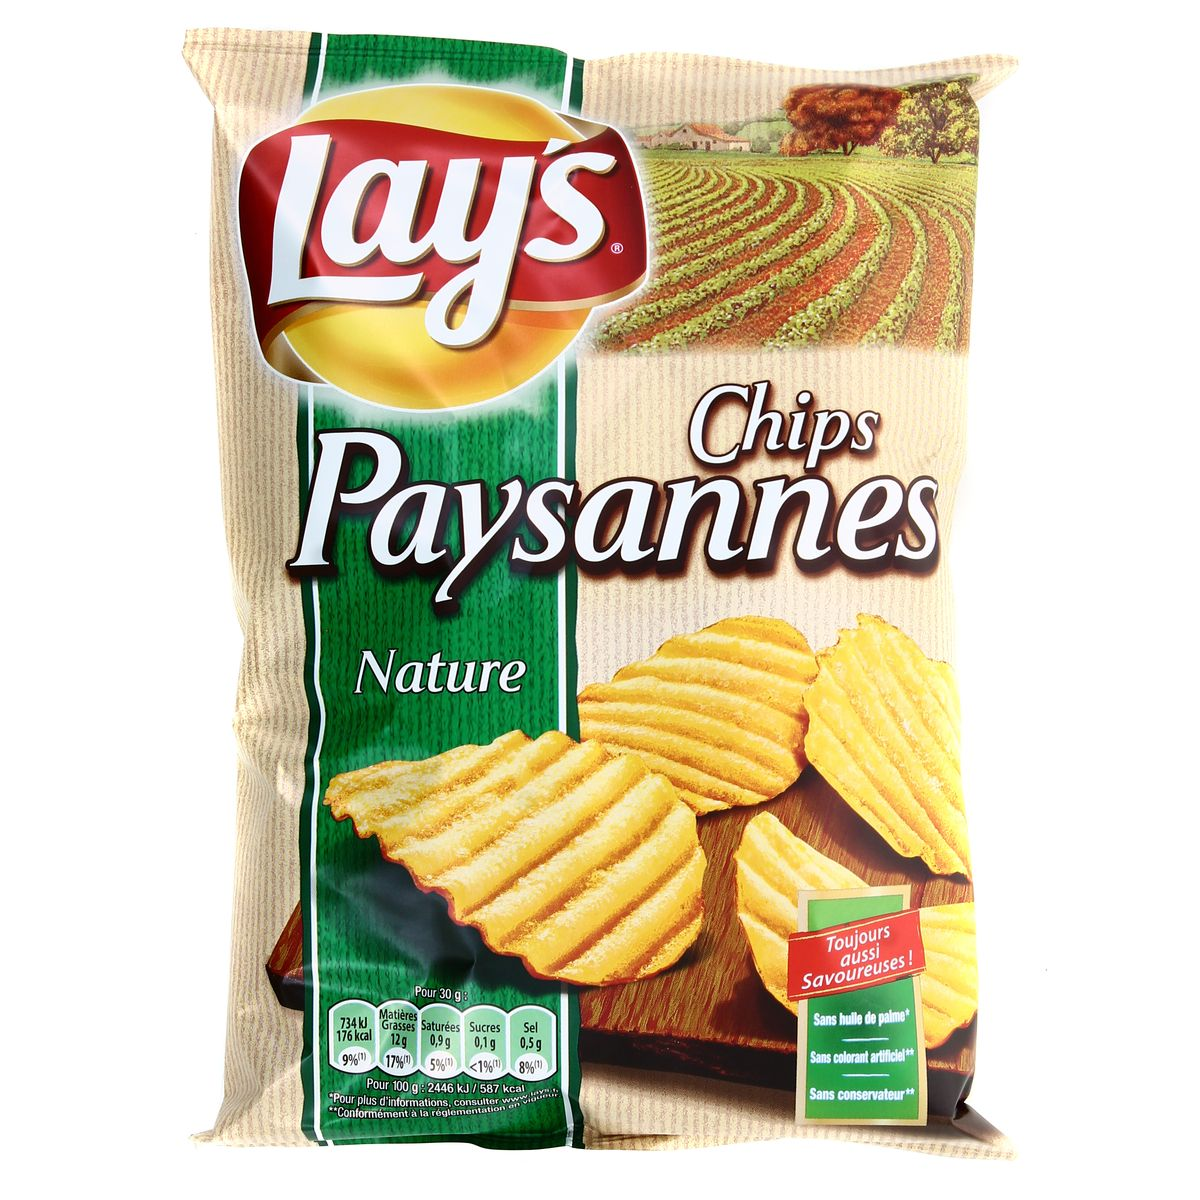 promo chips lays 5 1